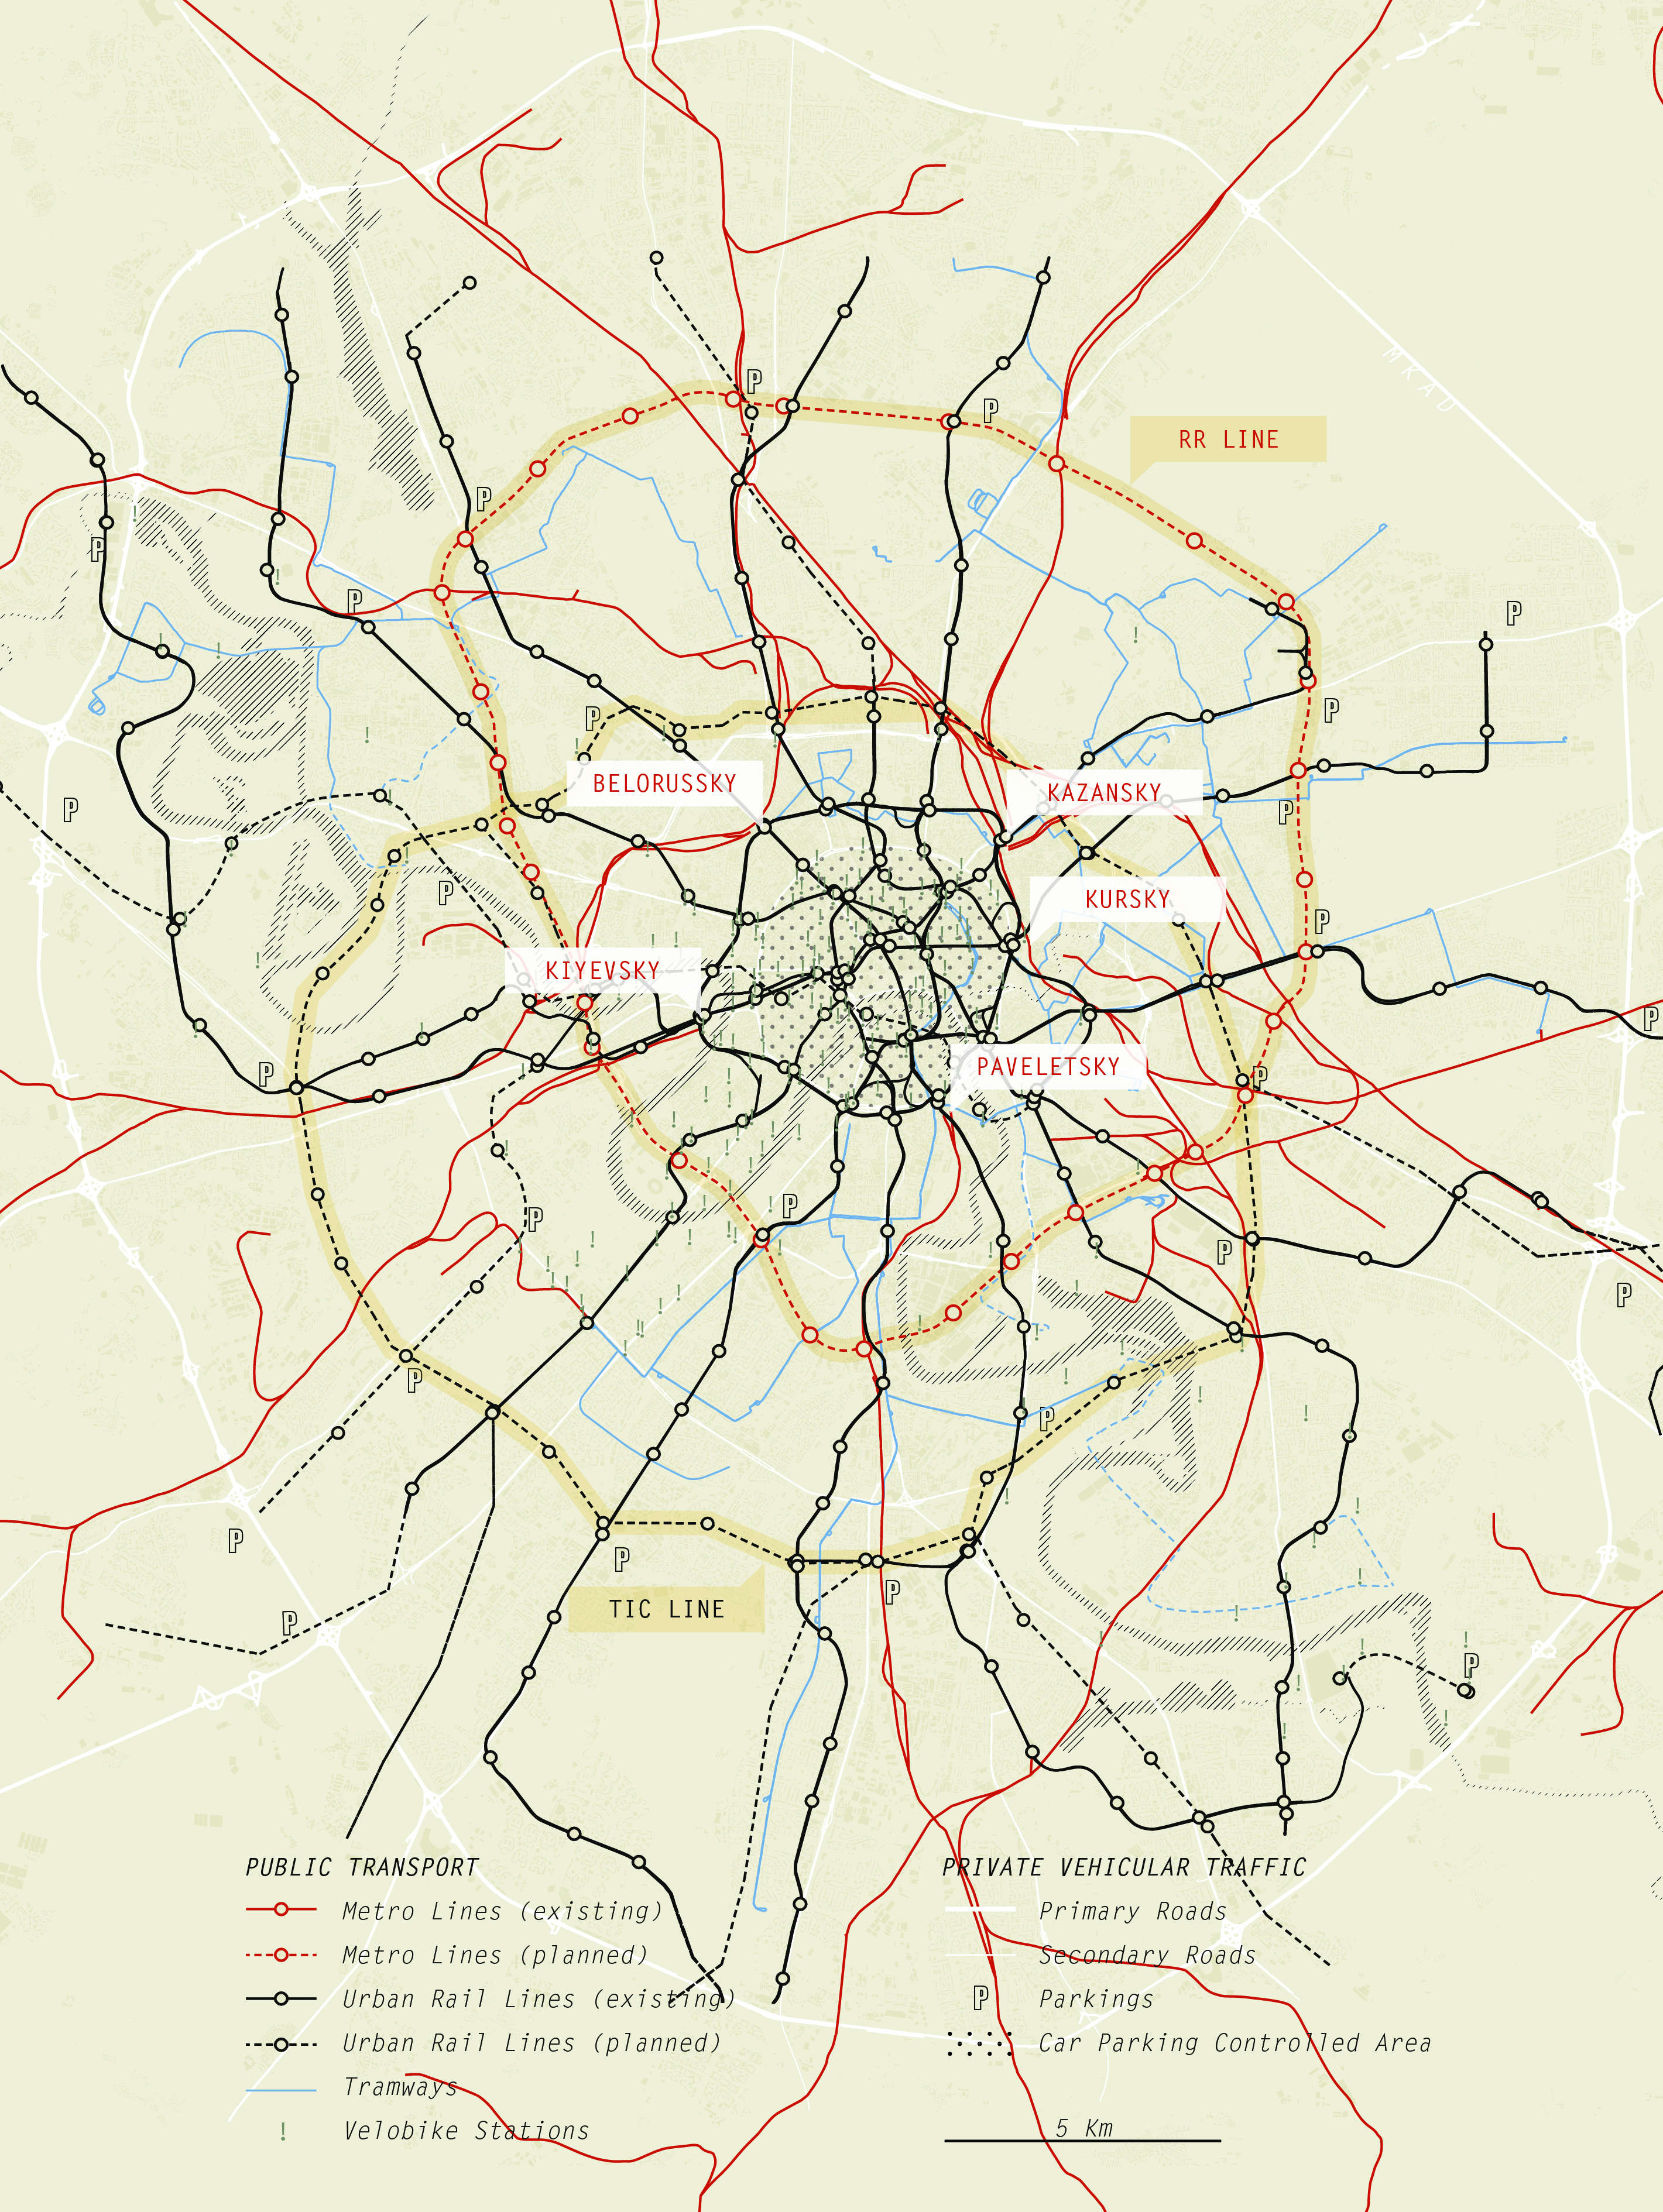 Systematica-Moscow-Multimodal Transport Network